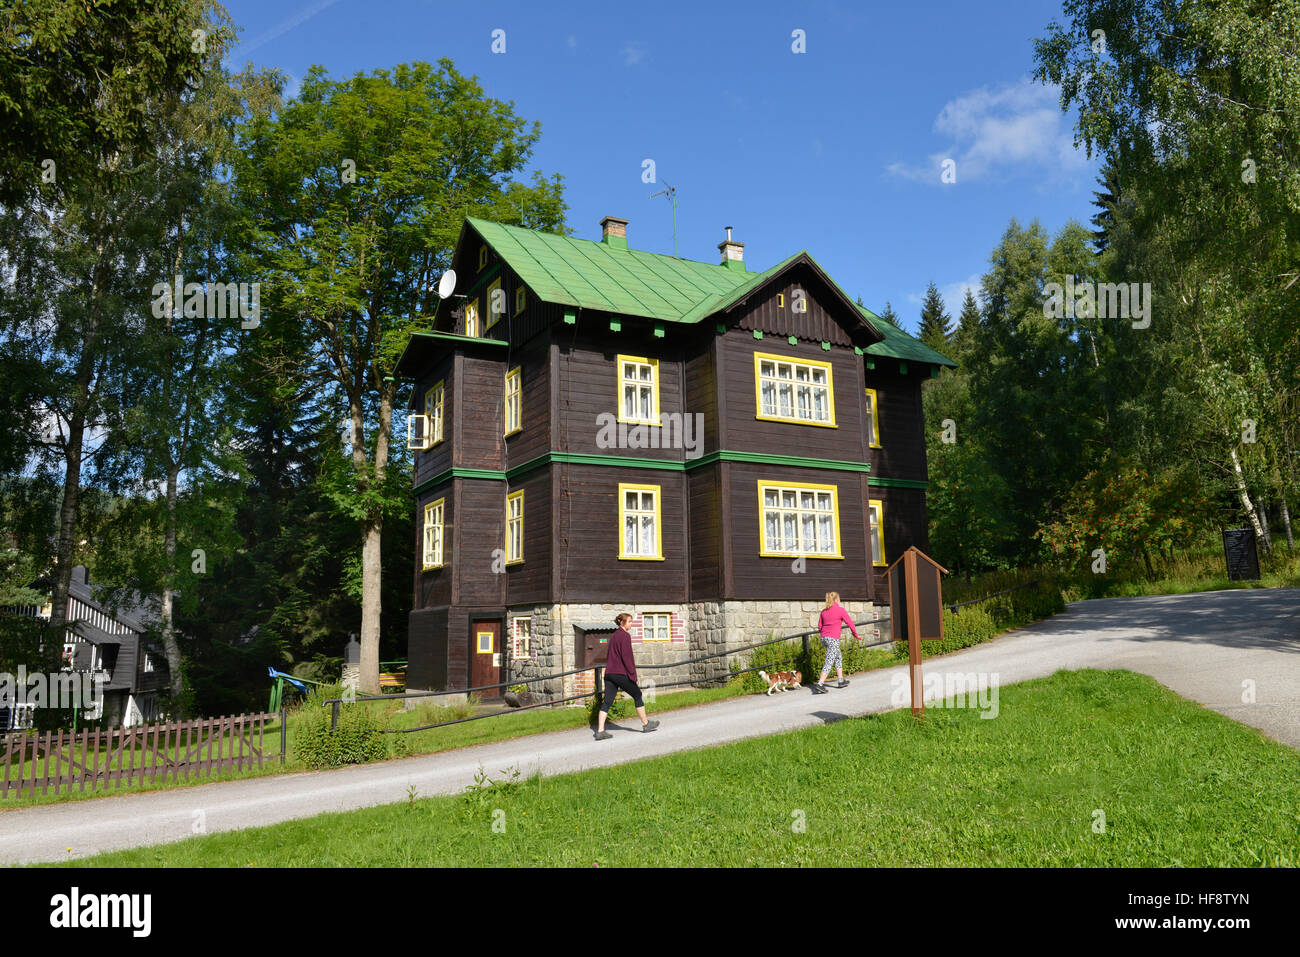 Holzhaus, Spindlersmuehle, Tschechien, Timber house, wooden spindle maker's mill, Czechia - Stock Image